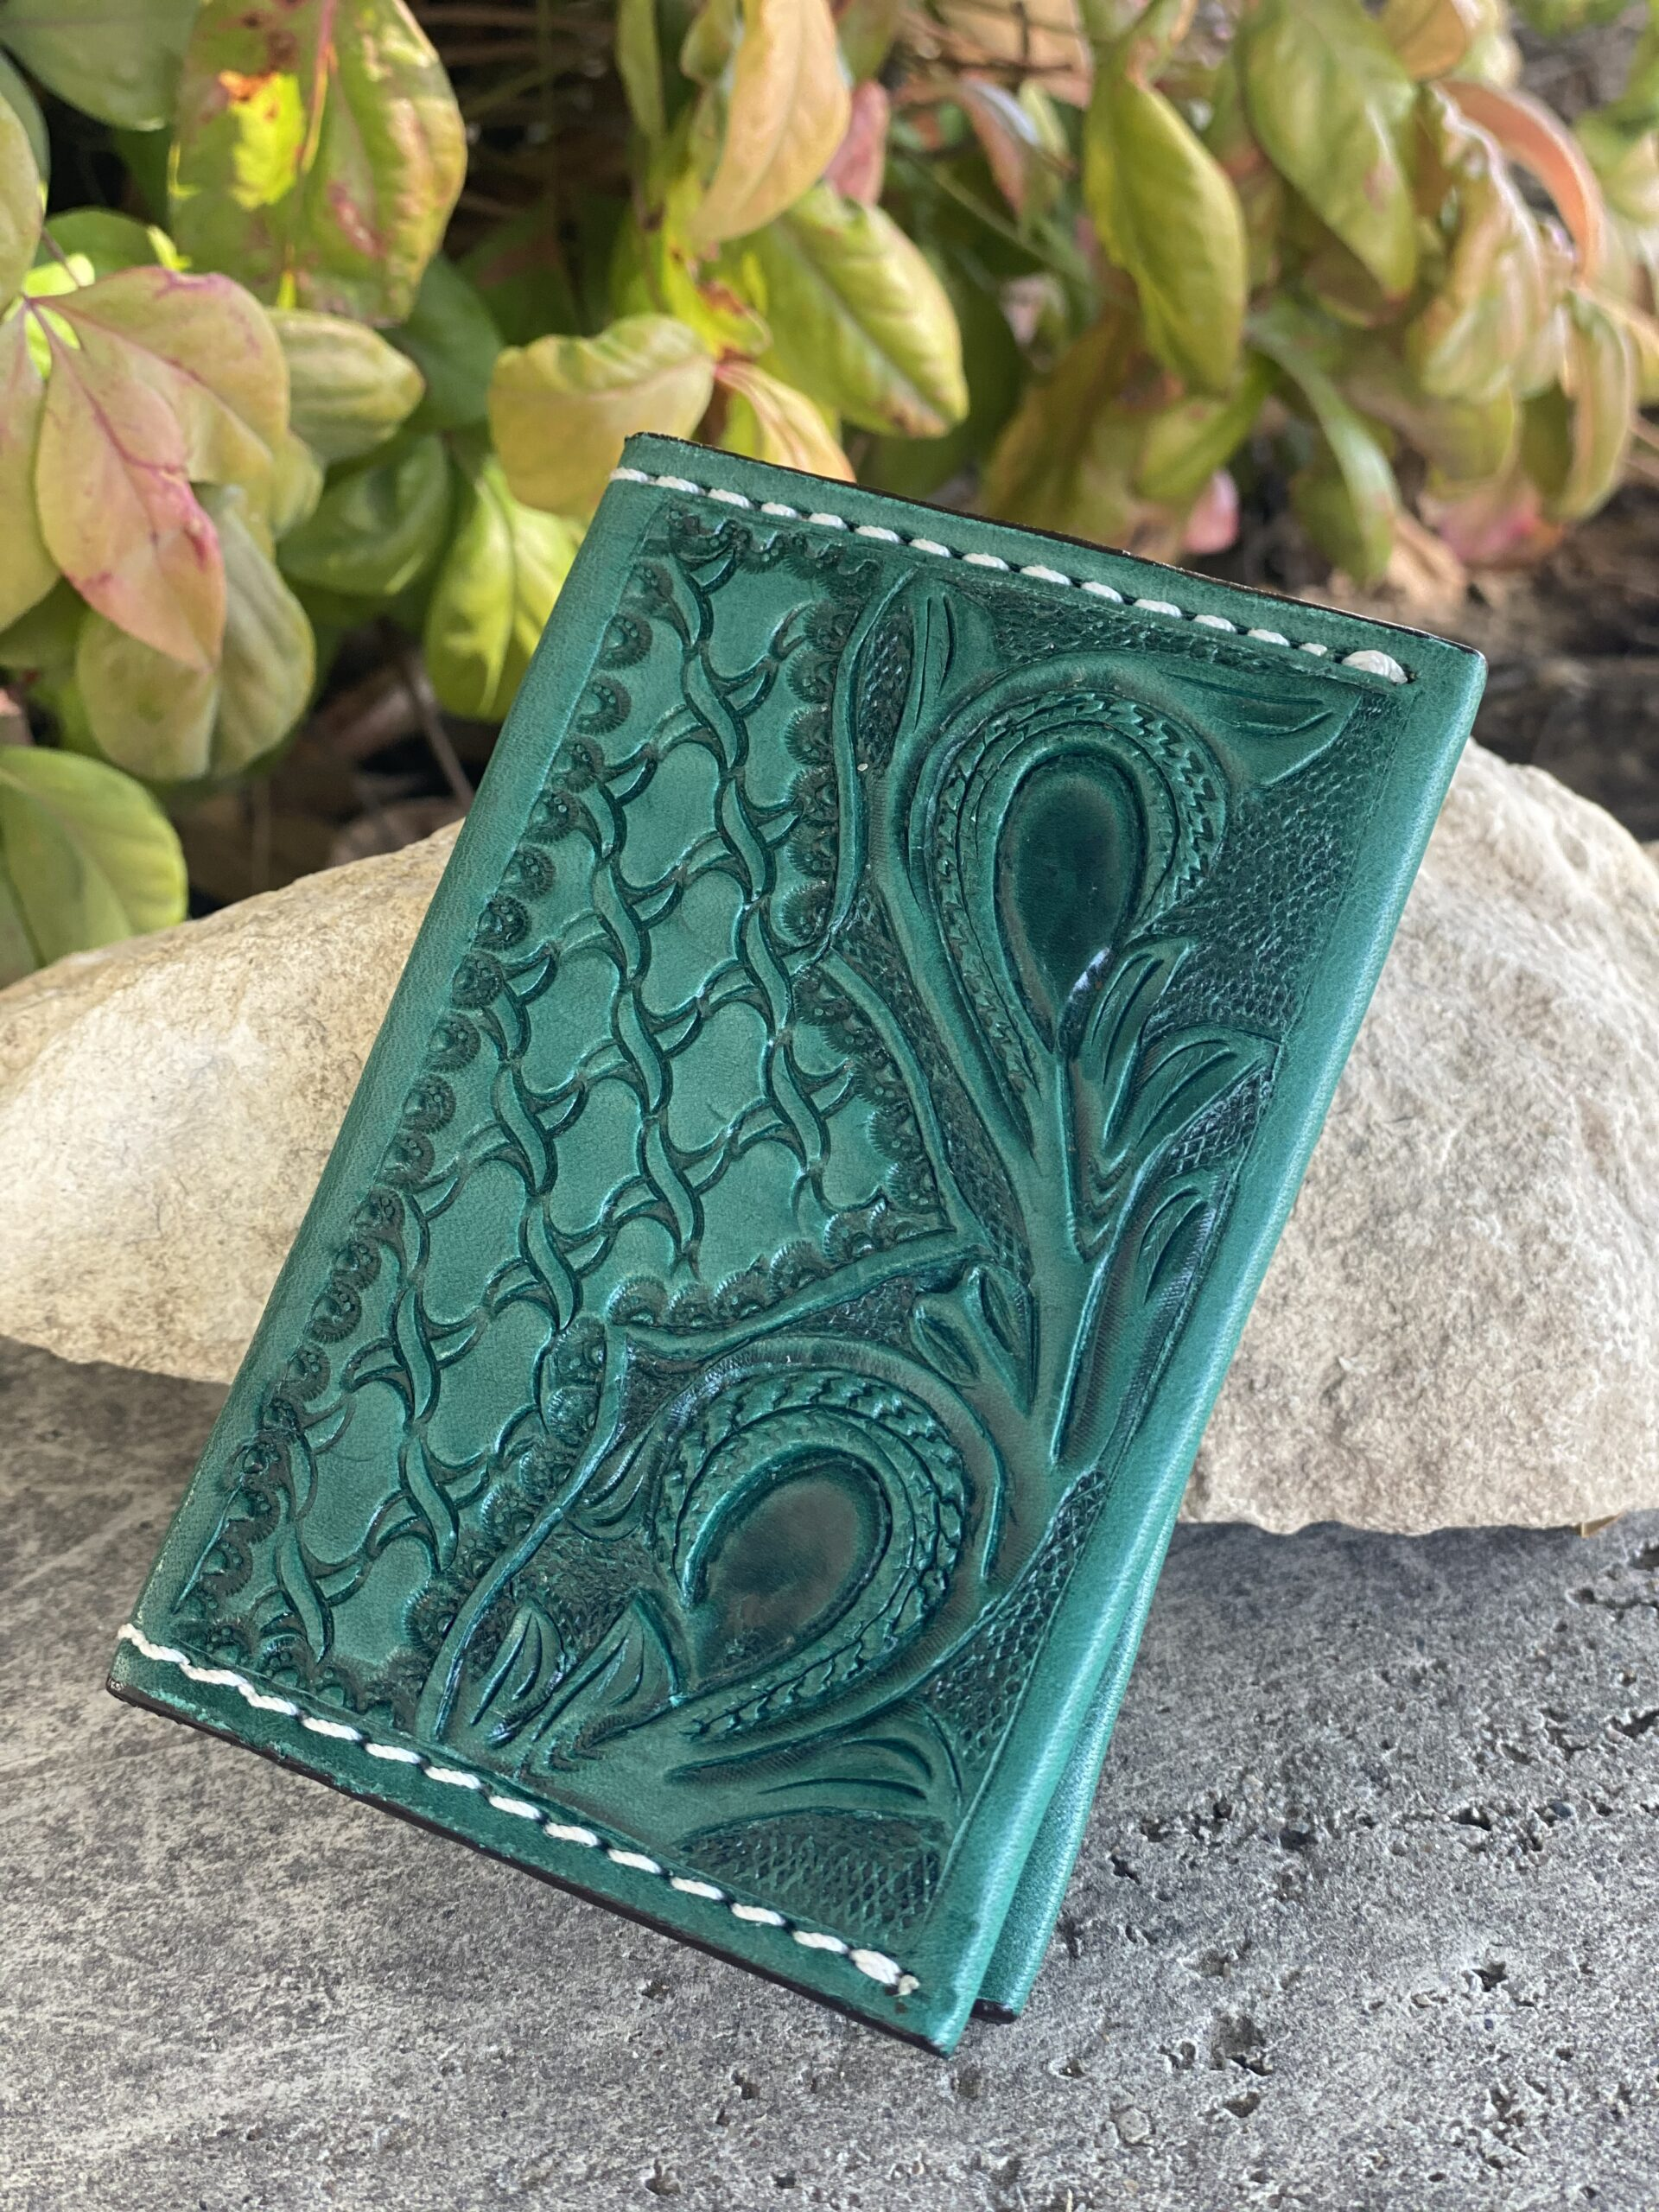 Card Holder Turquoise tooled